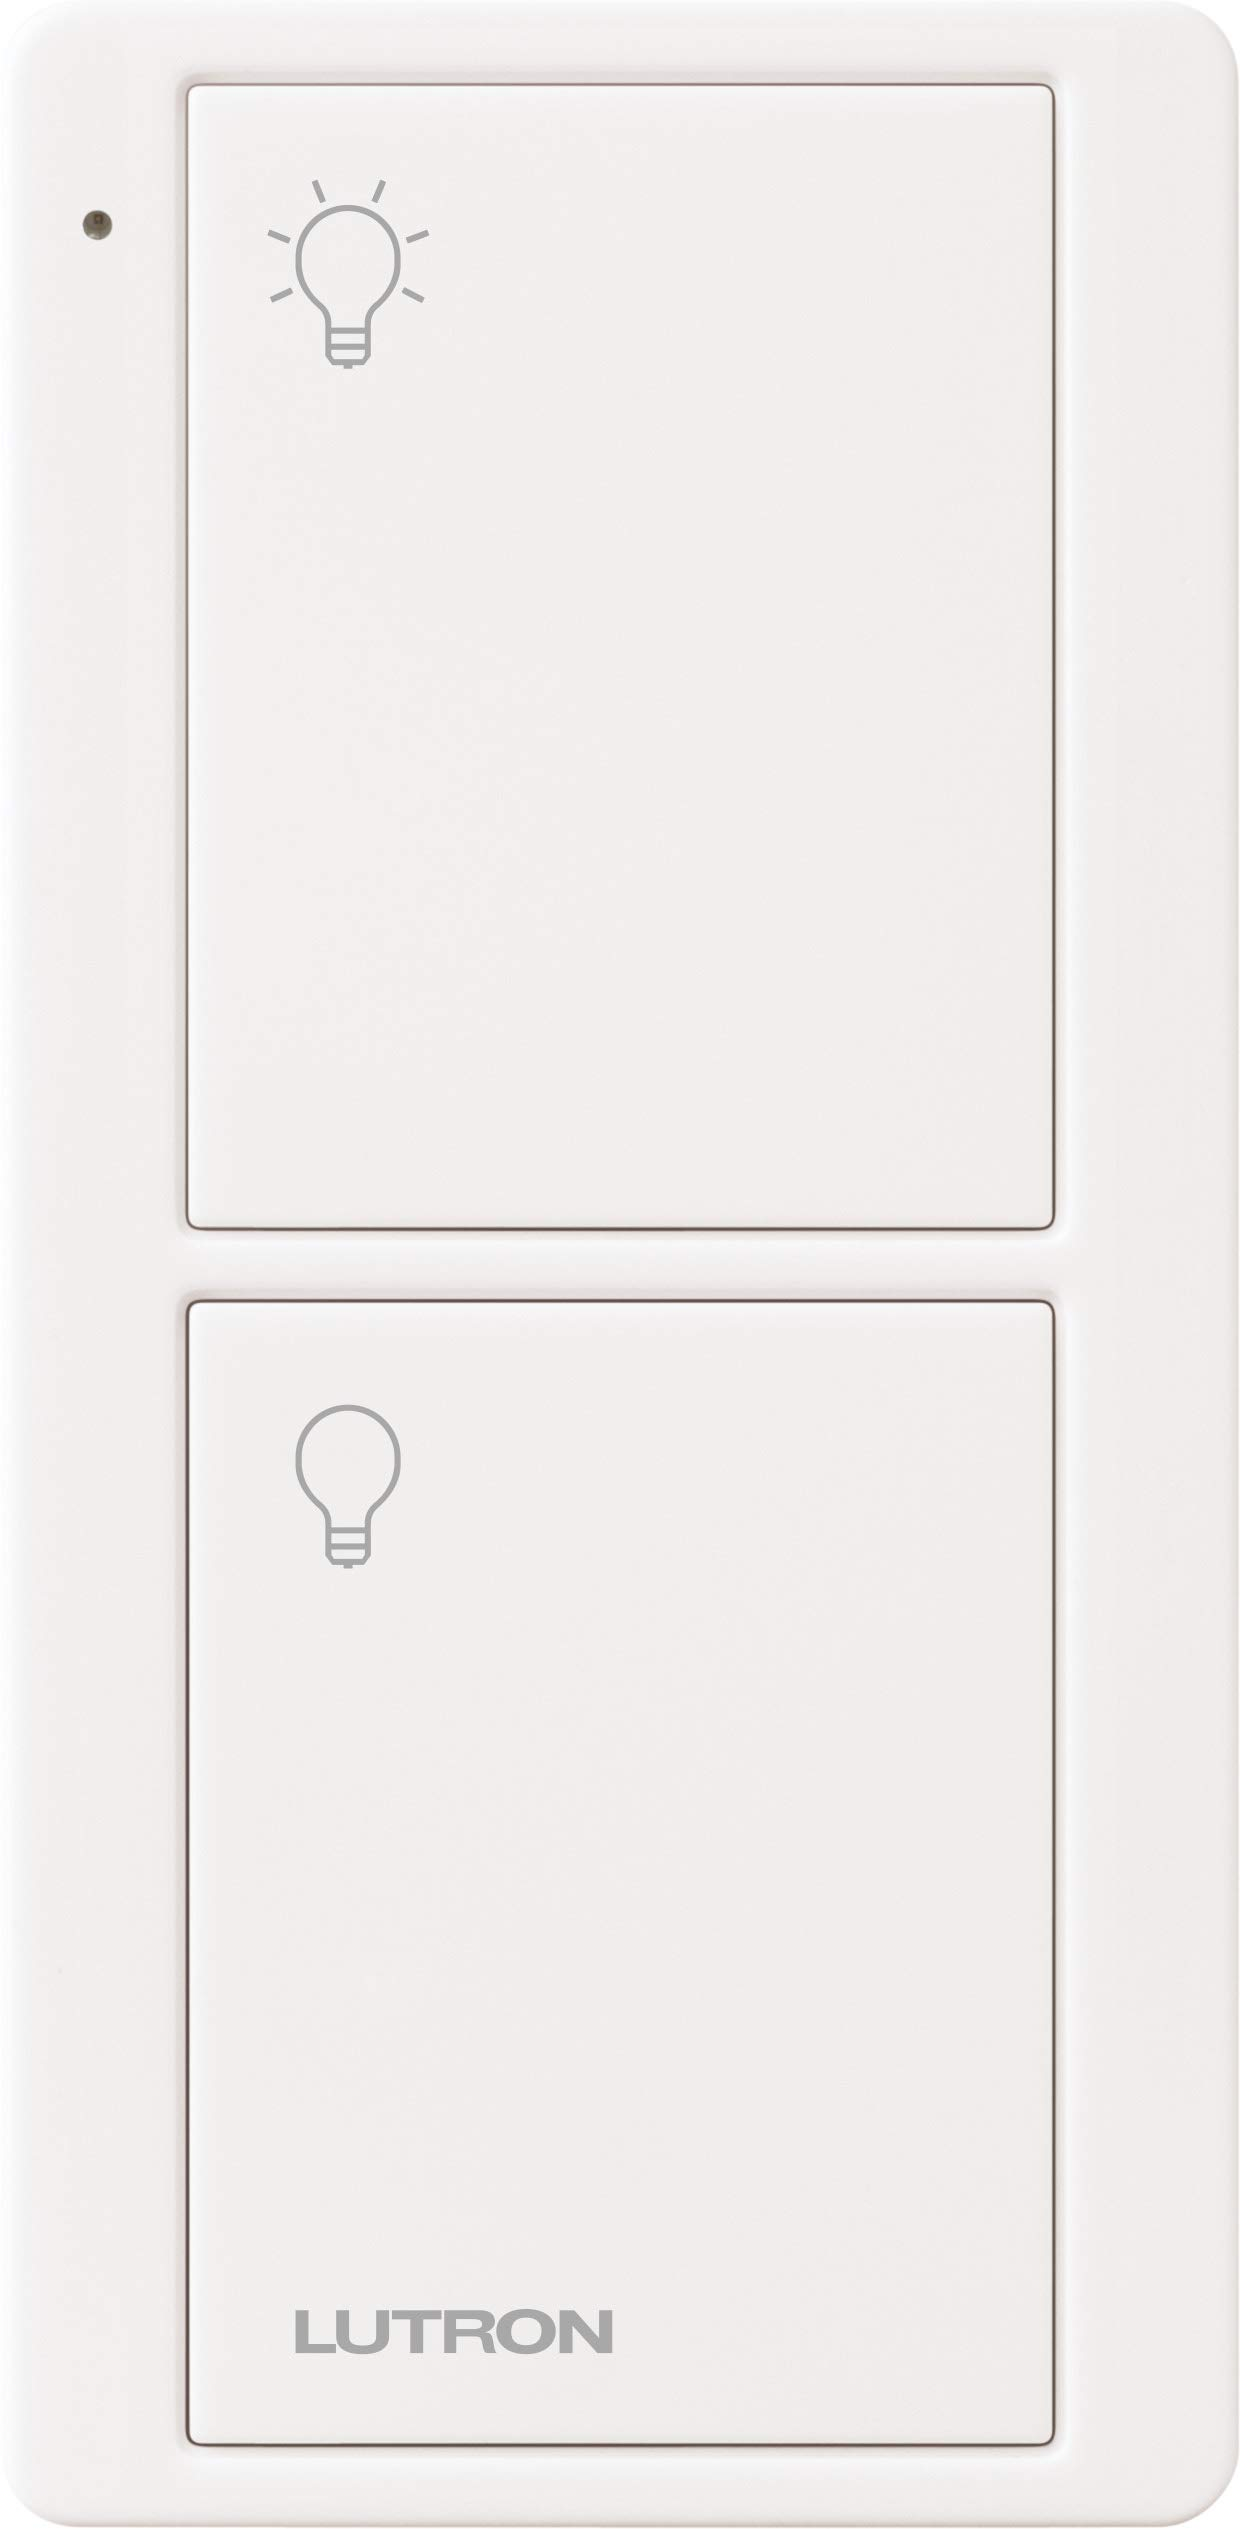 Lutron On/Off Switching Pico Remote for Caseta Smart Home Switch | PJ2-2B-GWH-L01 |White by Lutron